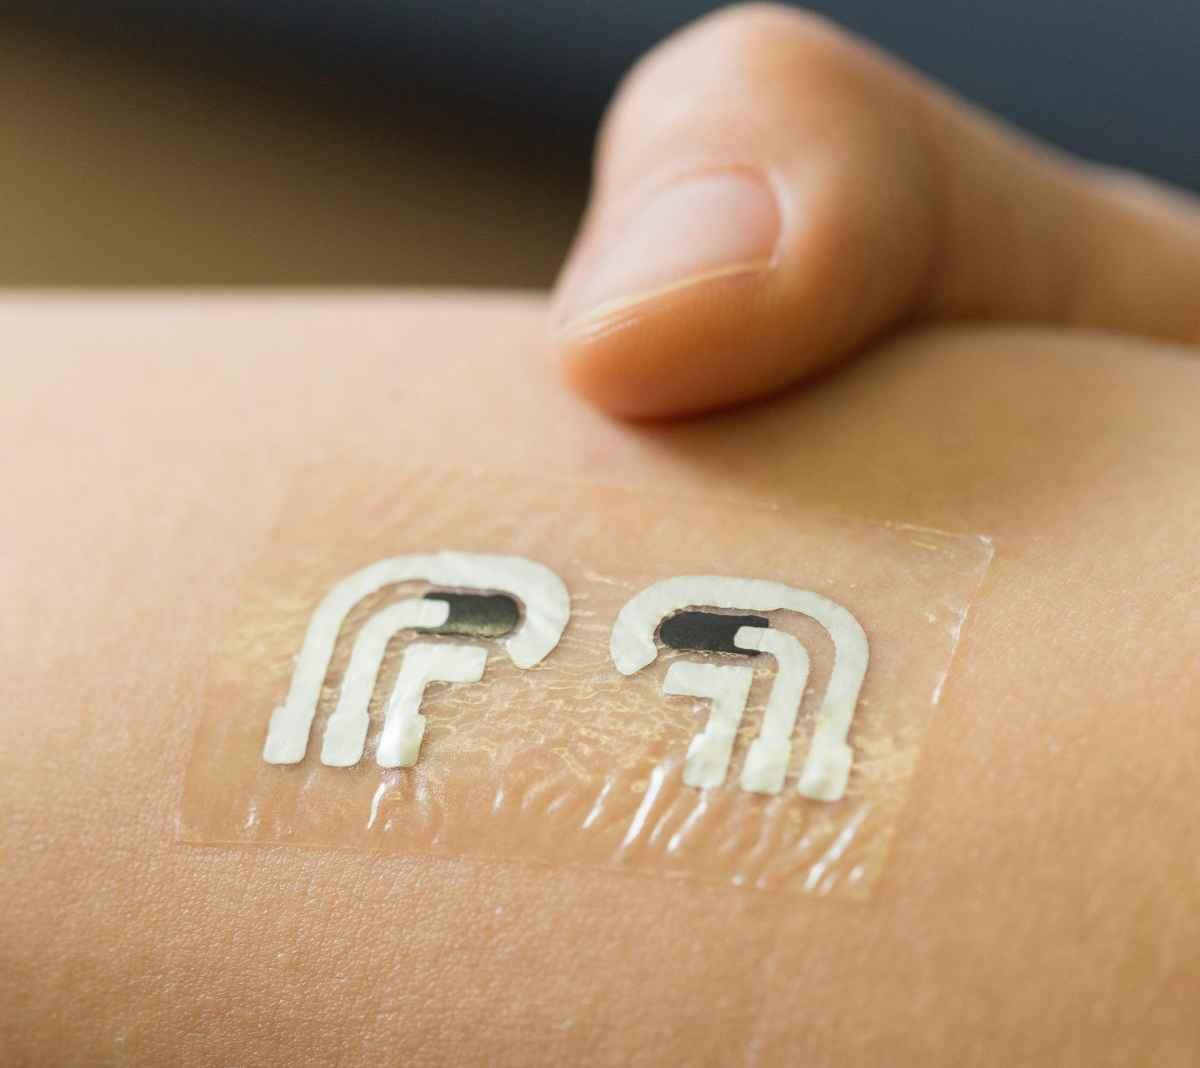 This tattoo could save your life